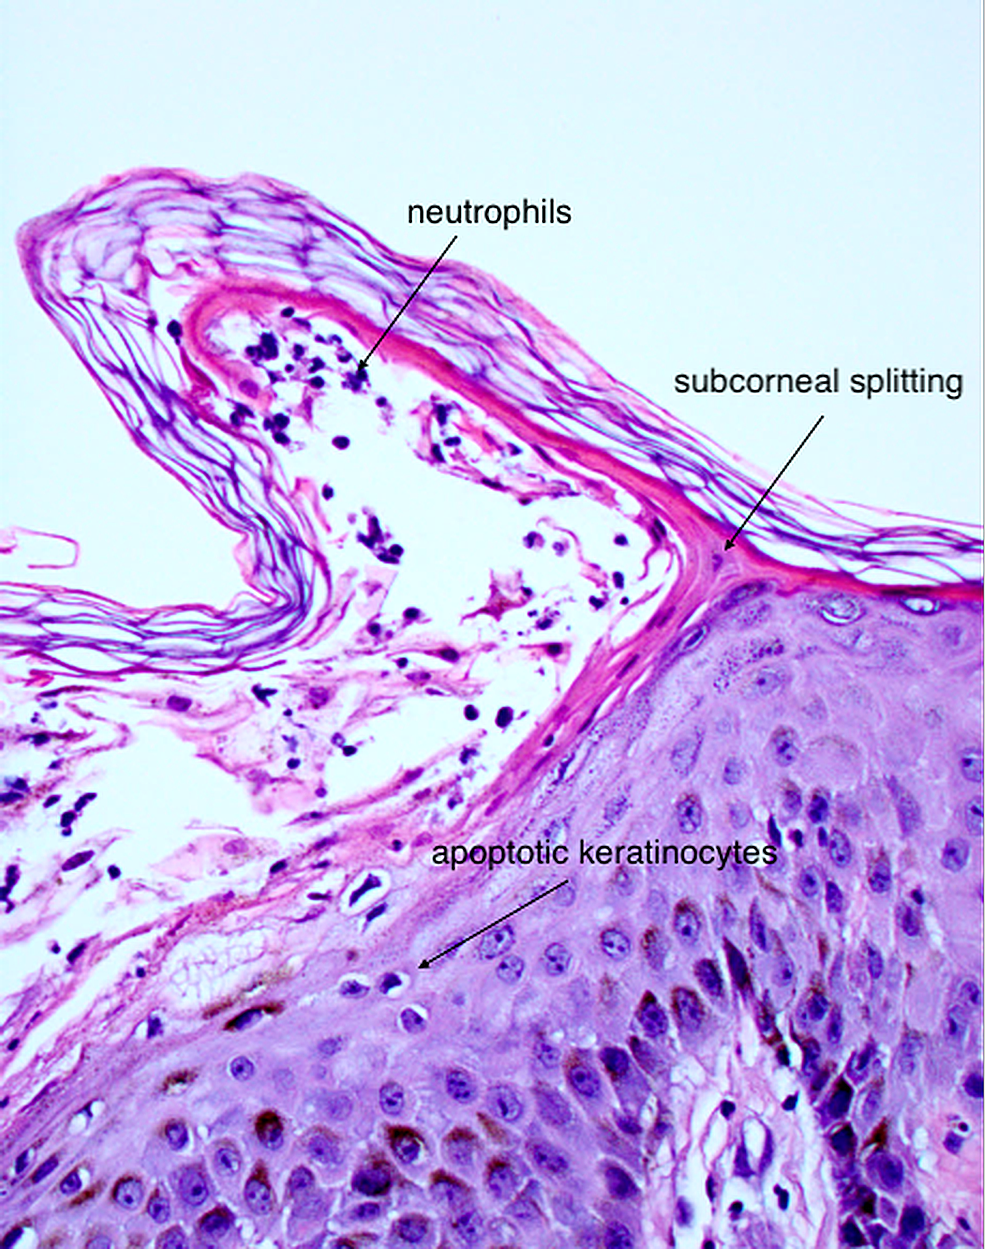 Splitting-of-the-subcorneal-layer-forming-a-sterile-vesicle-with-neutrophil-infiltration.